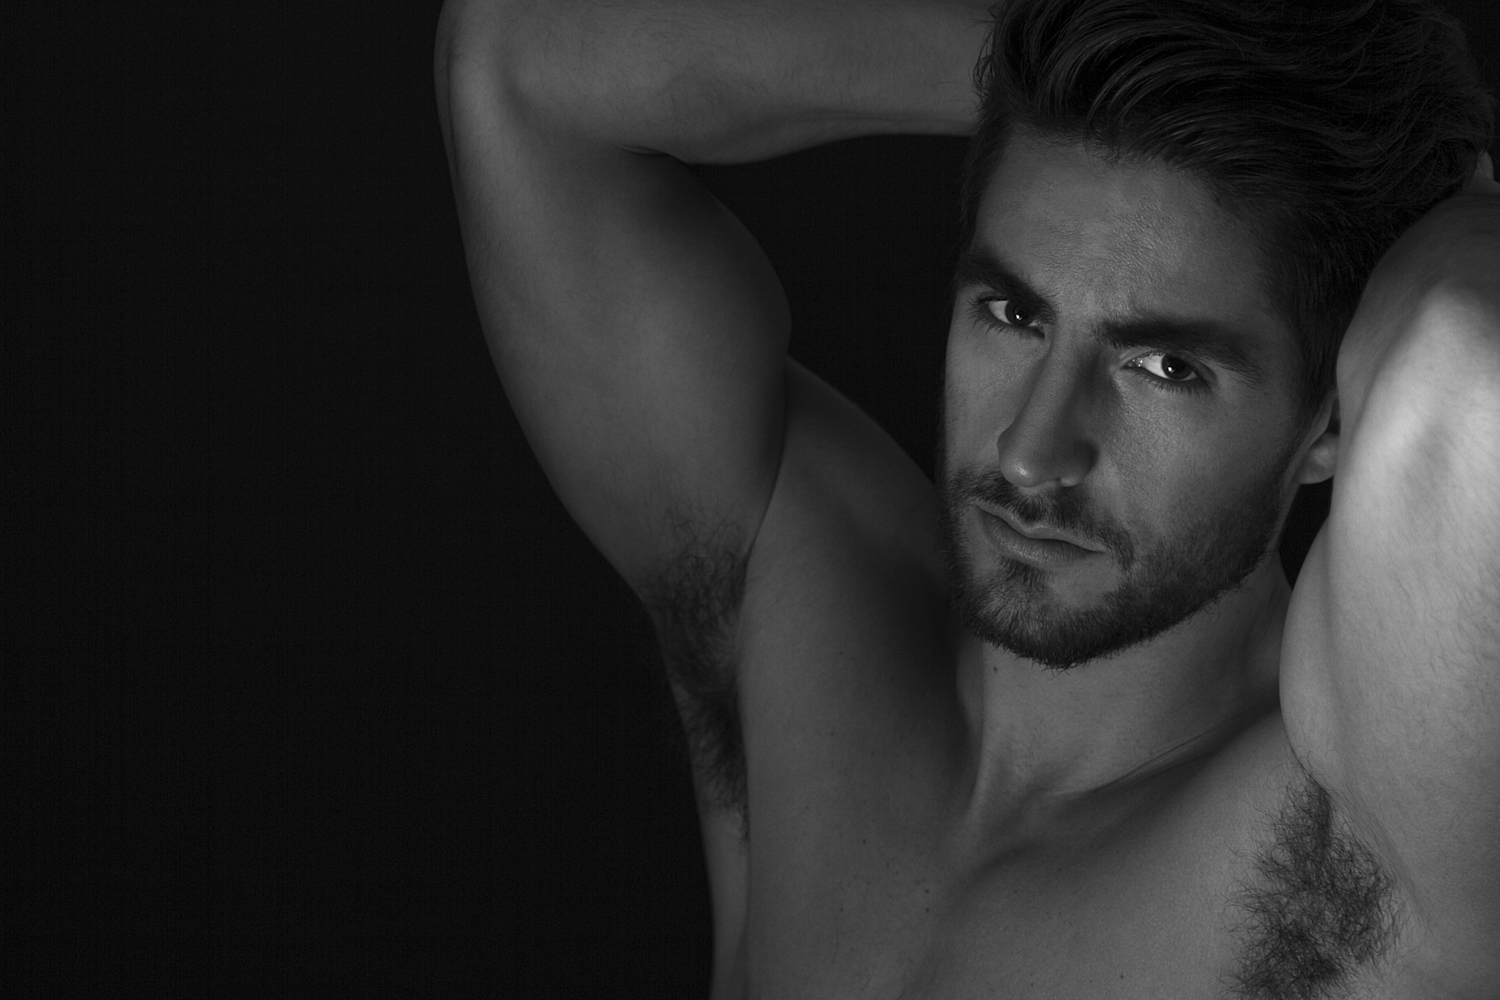 New model to present al over the world, meet Juan José Letnic shot by René de la Cruz.